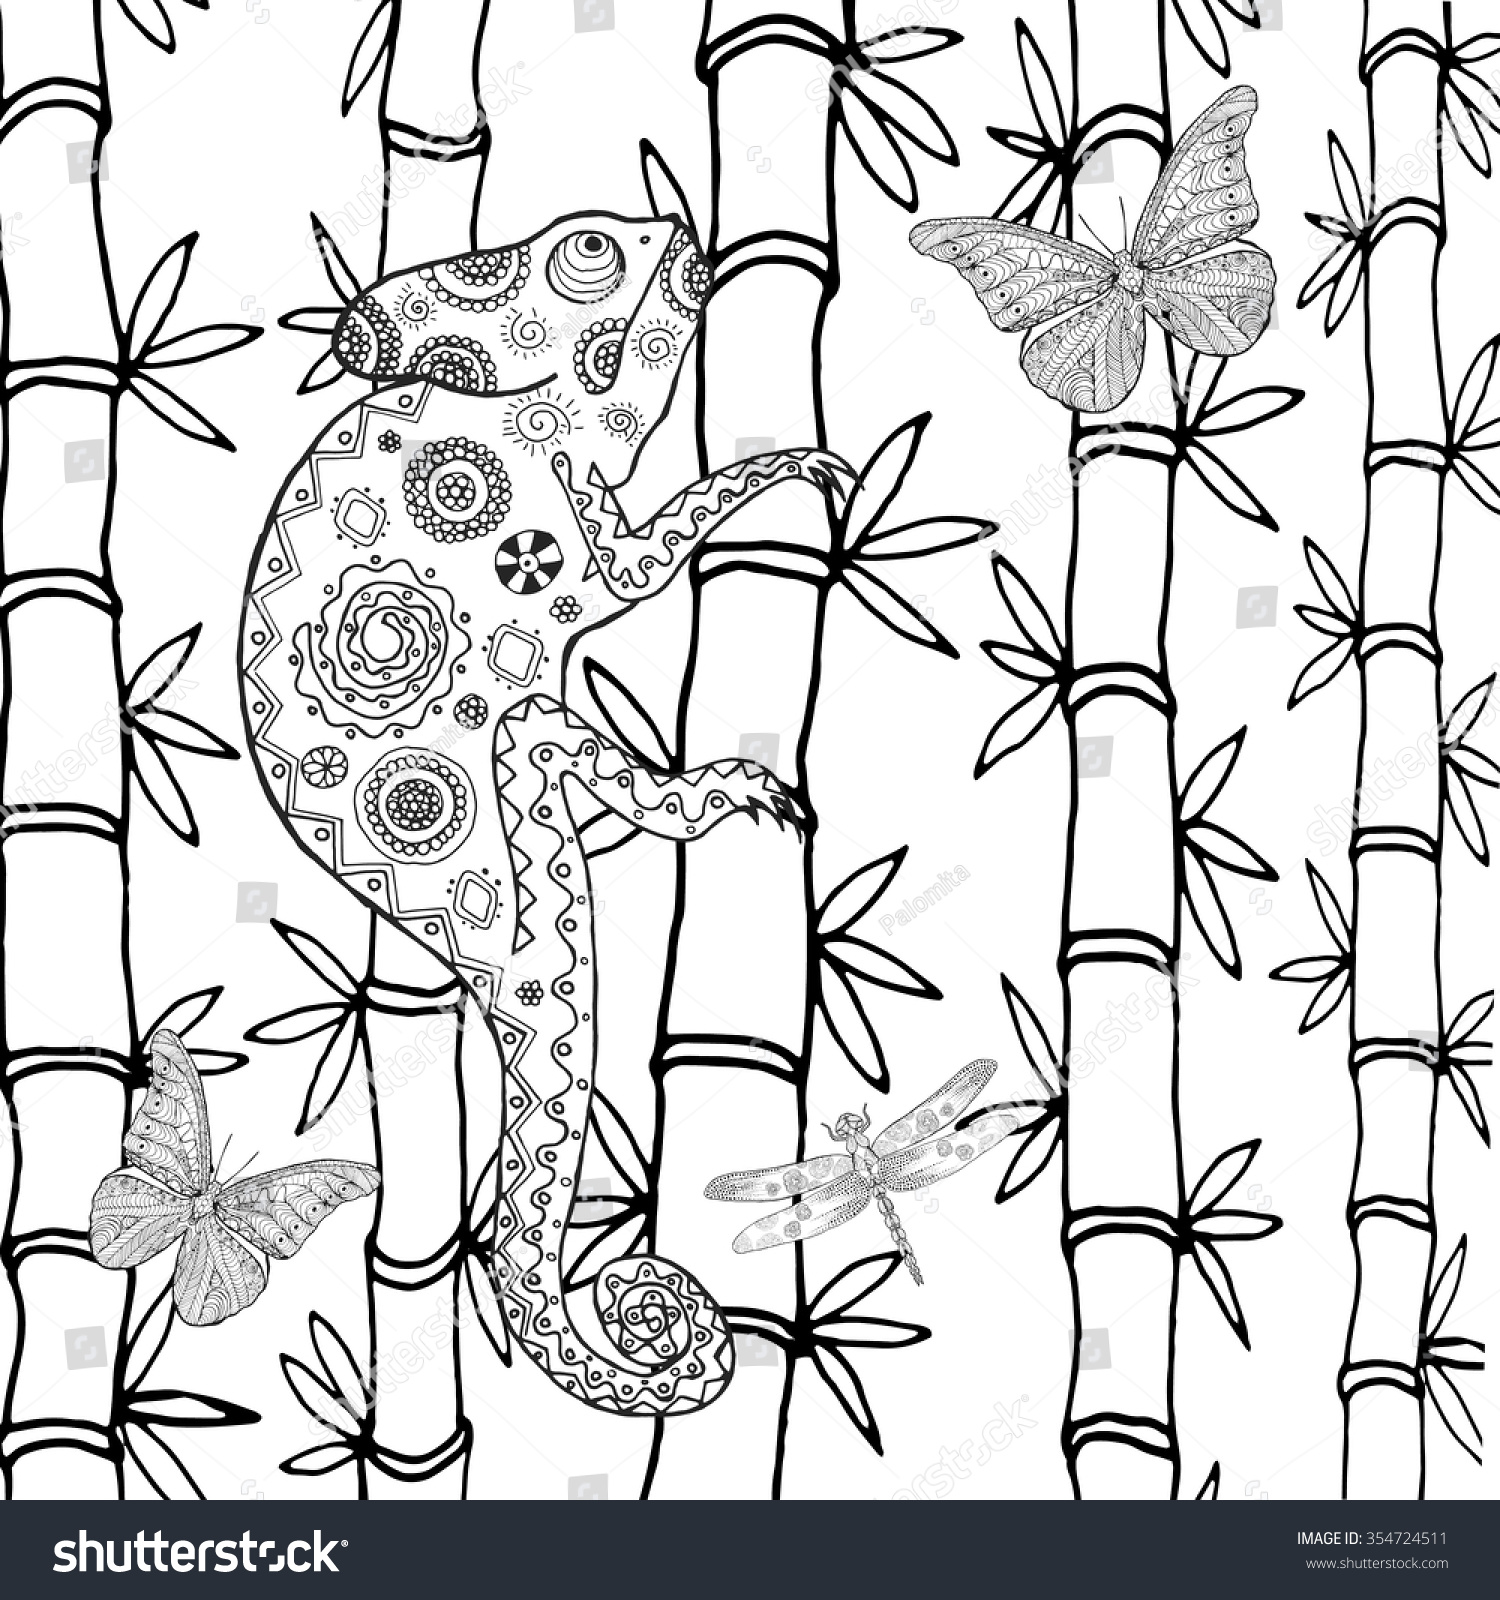 chameleon coloring page animals hand drawn doodle ethnic